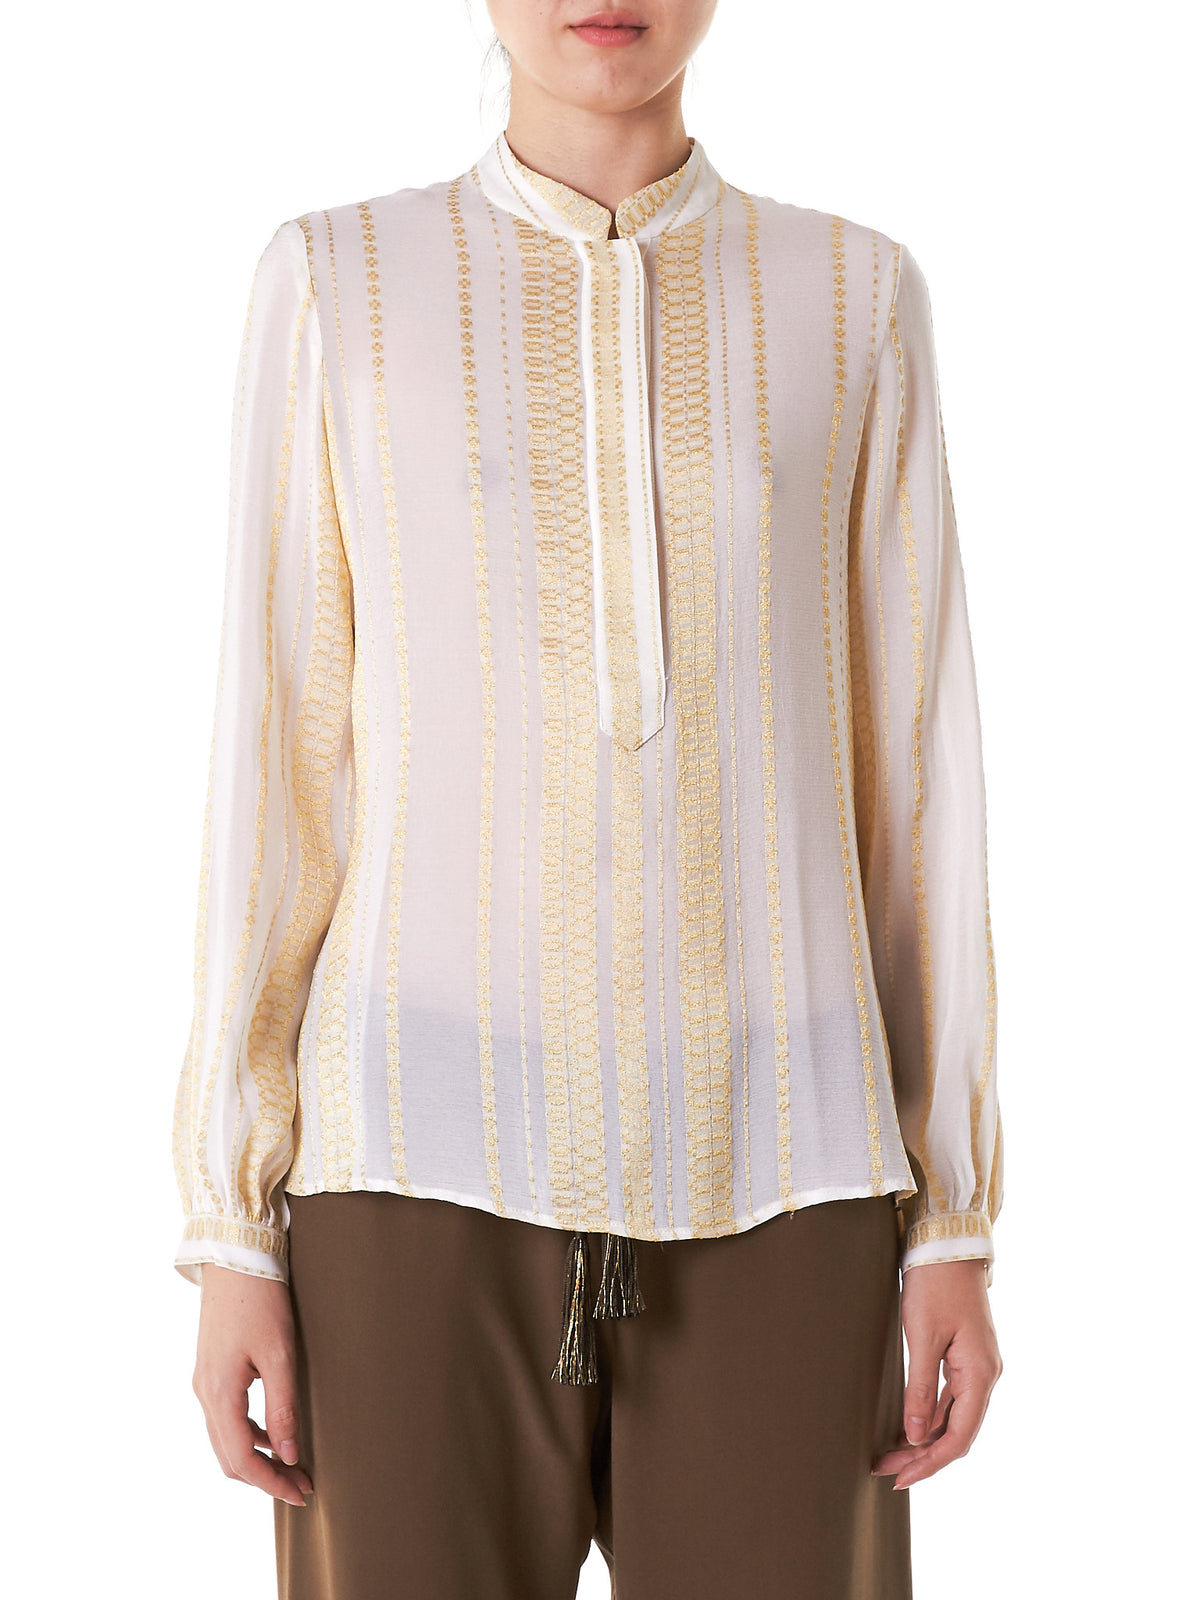 Embroidered Silk Blouse (CLBL101-HERA-089)